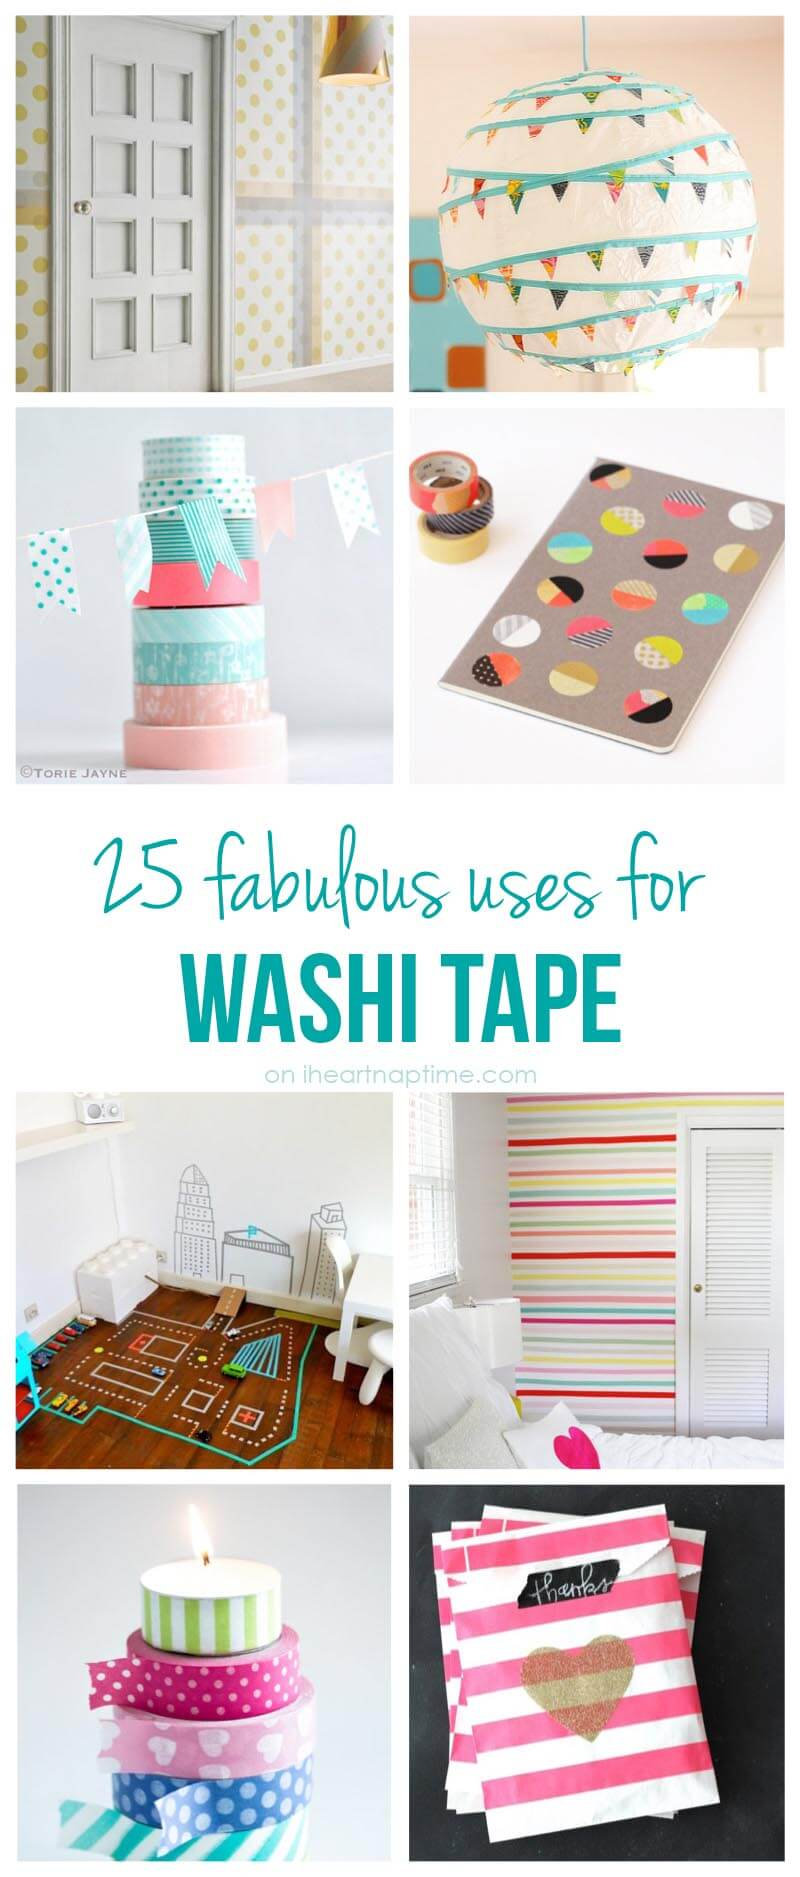 25 excellent uses for washi tape i heart nap time. Black Bedroom Furniture Sets. Home Design Ideas